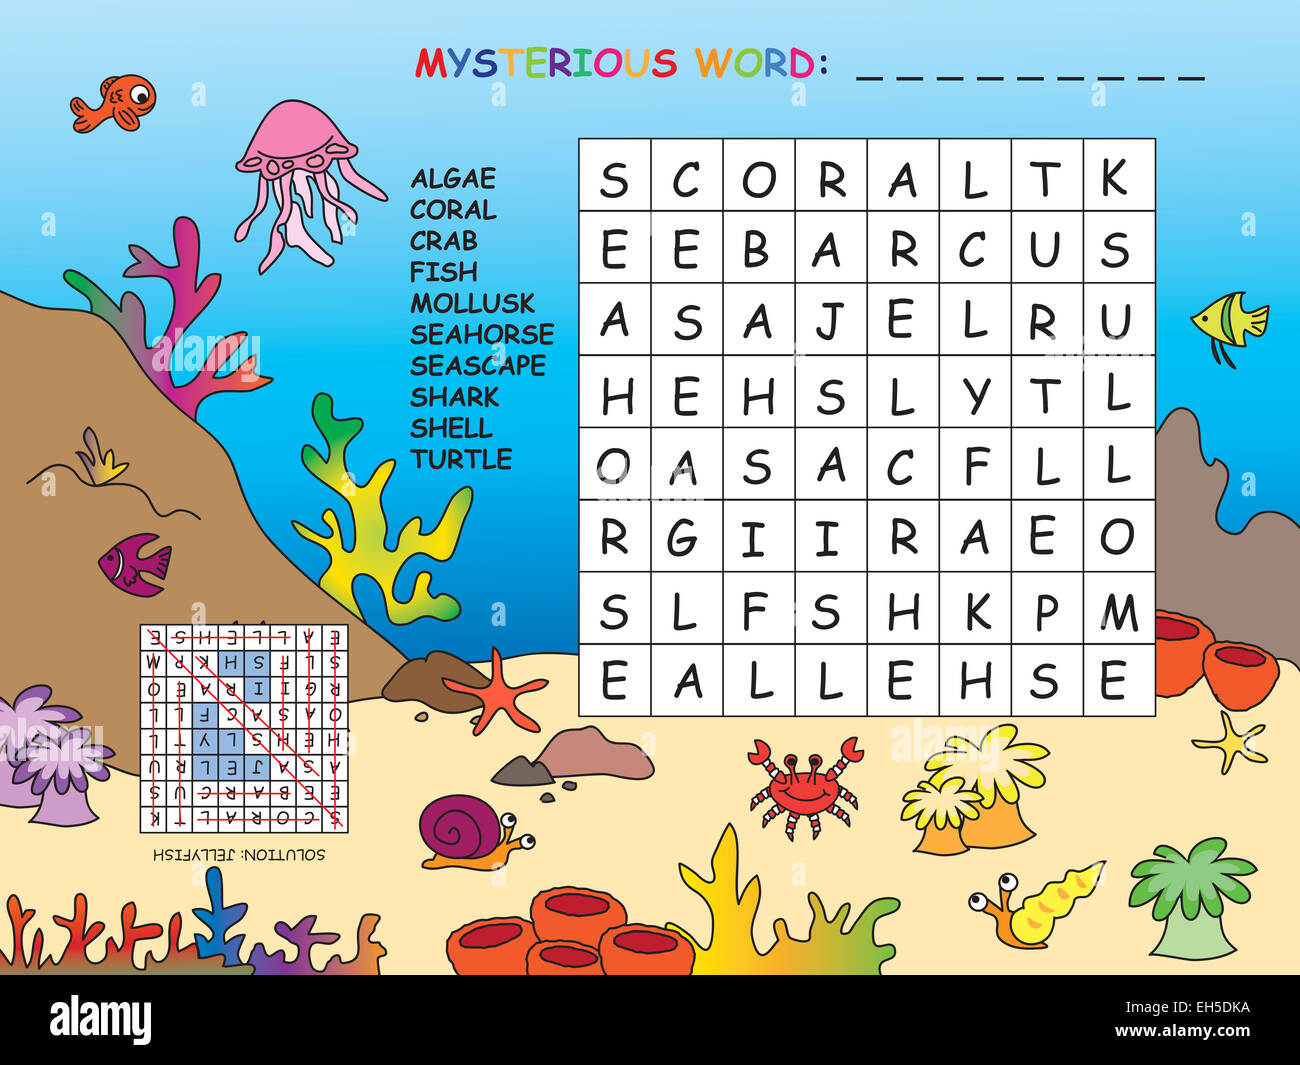 Turtle Word Stock Photos & Turtle Word Stock Images - Alamy